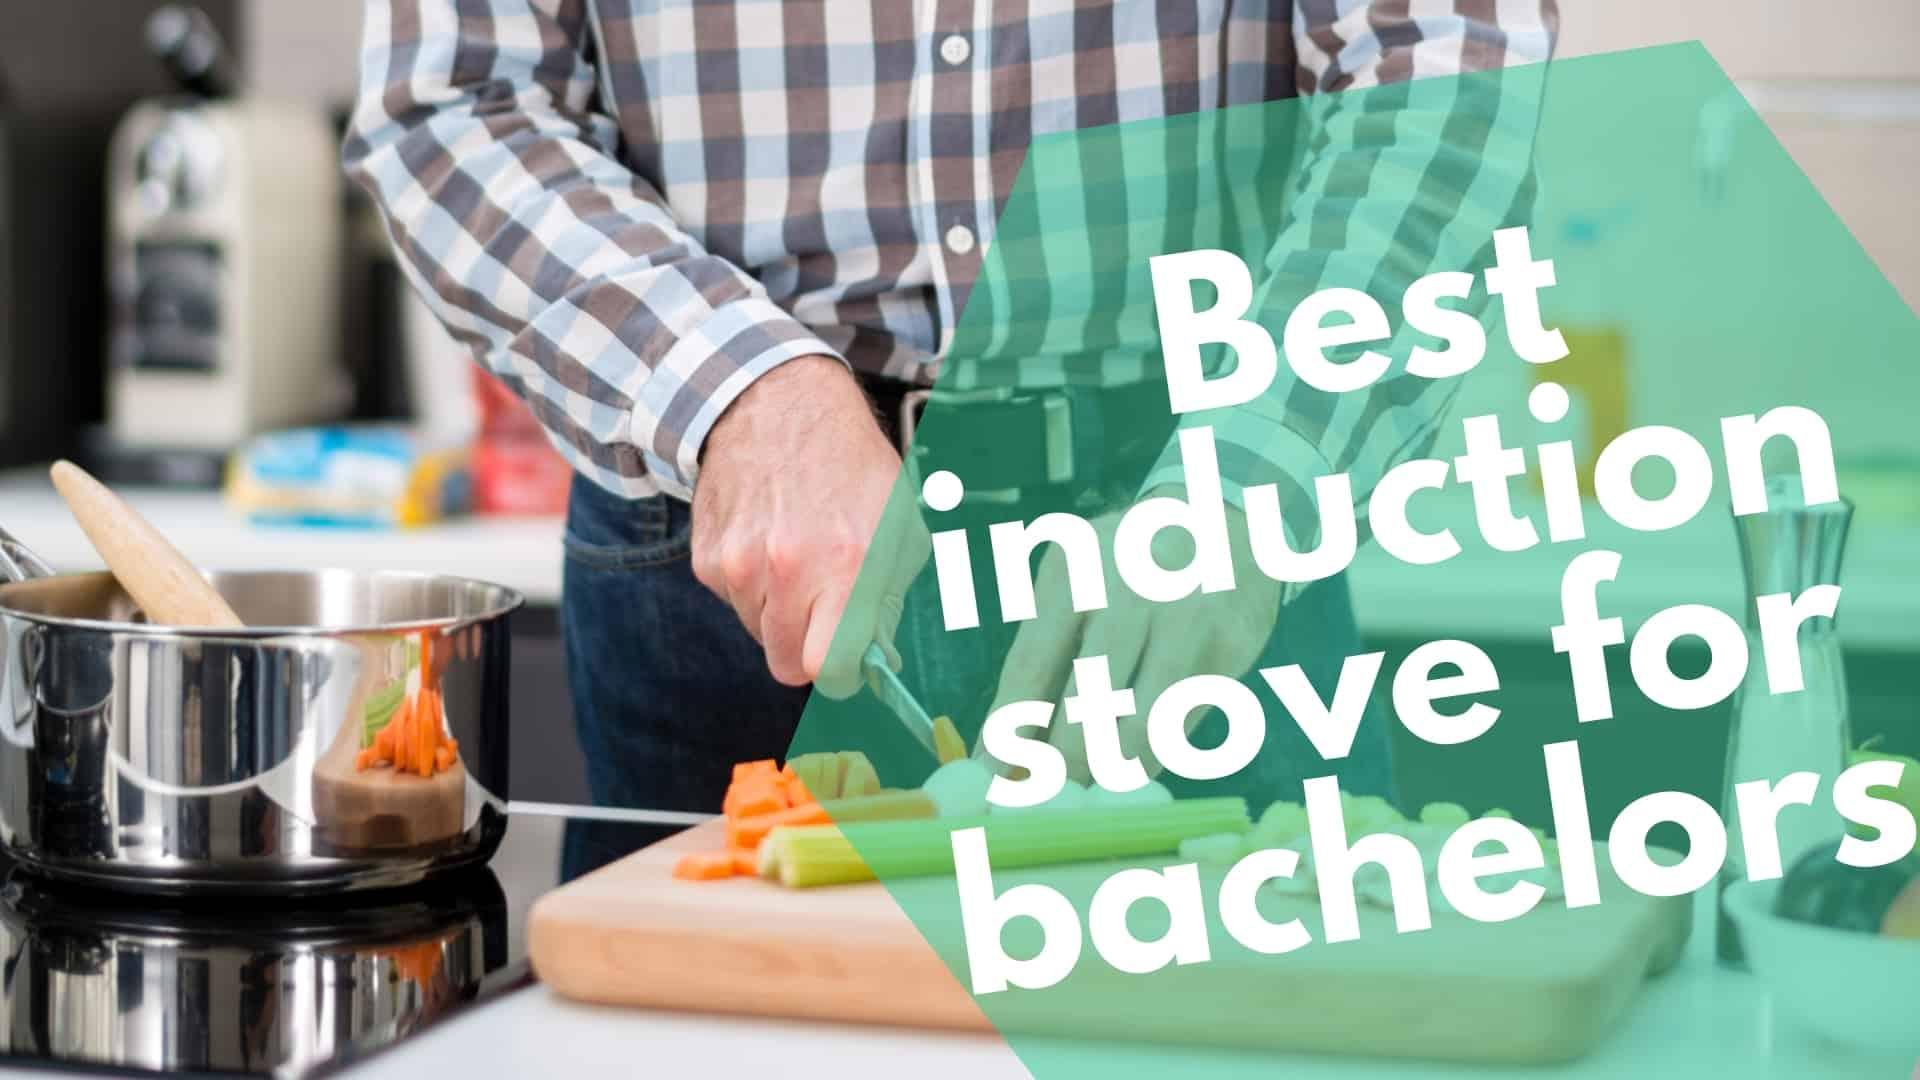 Best induction stove for bachelors